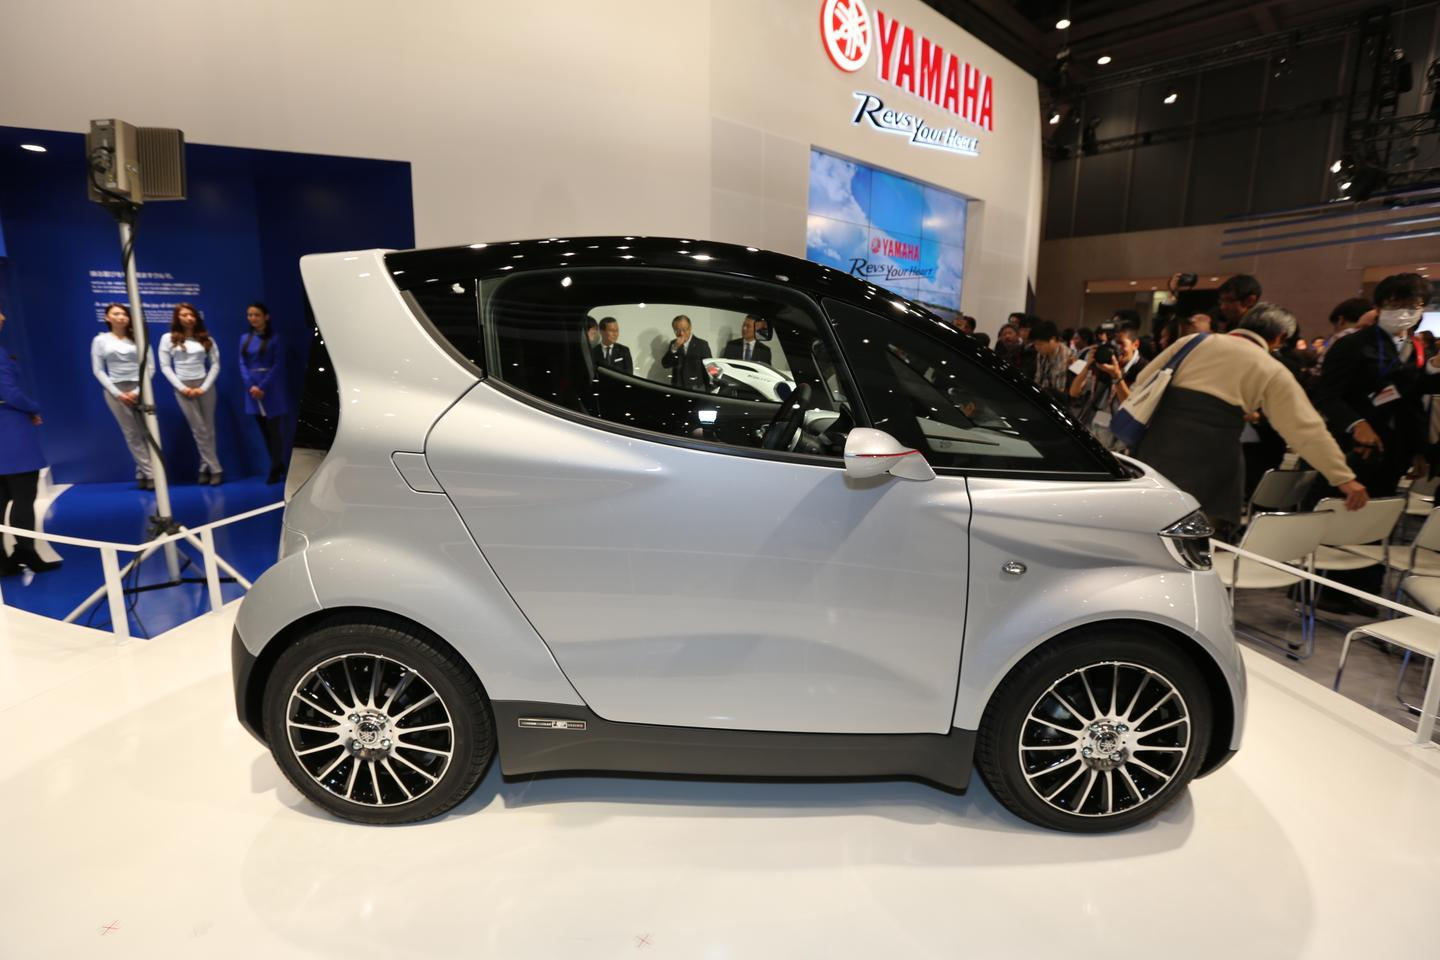 Yamaha's exciting new Motiv.e two-seater